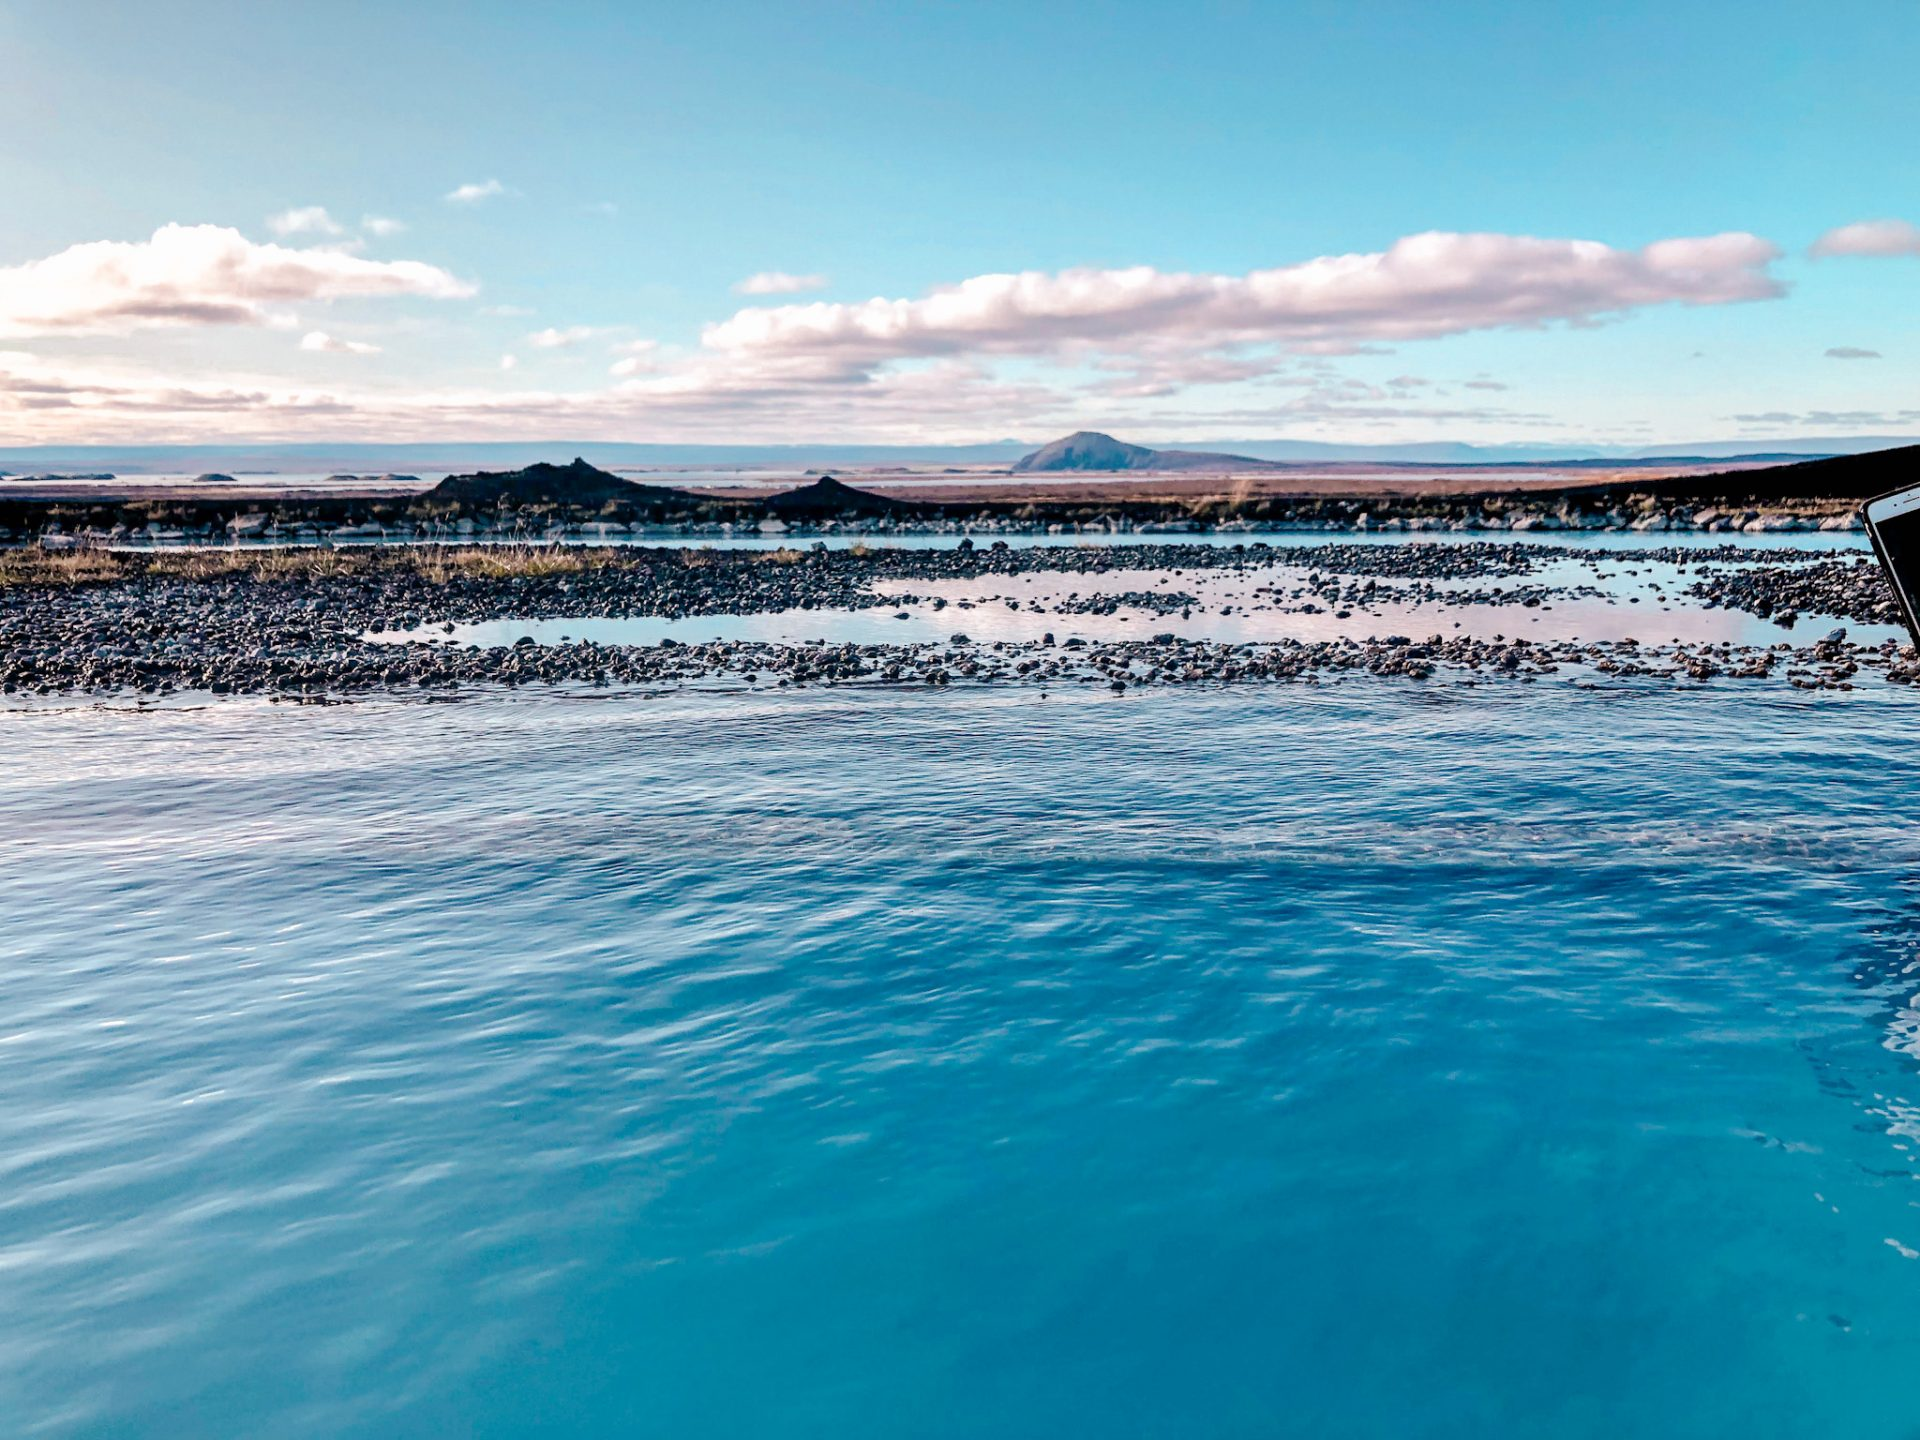 Blue sky with fluffy white clouds above a lava field located in Iceland and a geothermal pool overlooking the rolling hills.